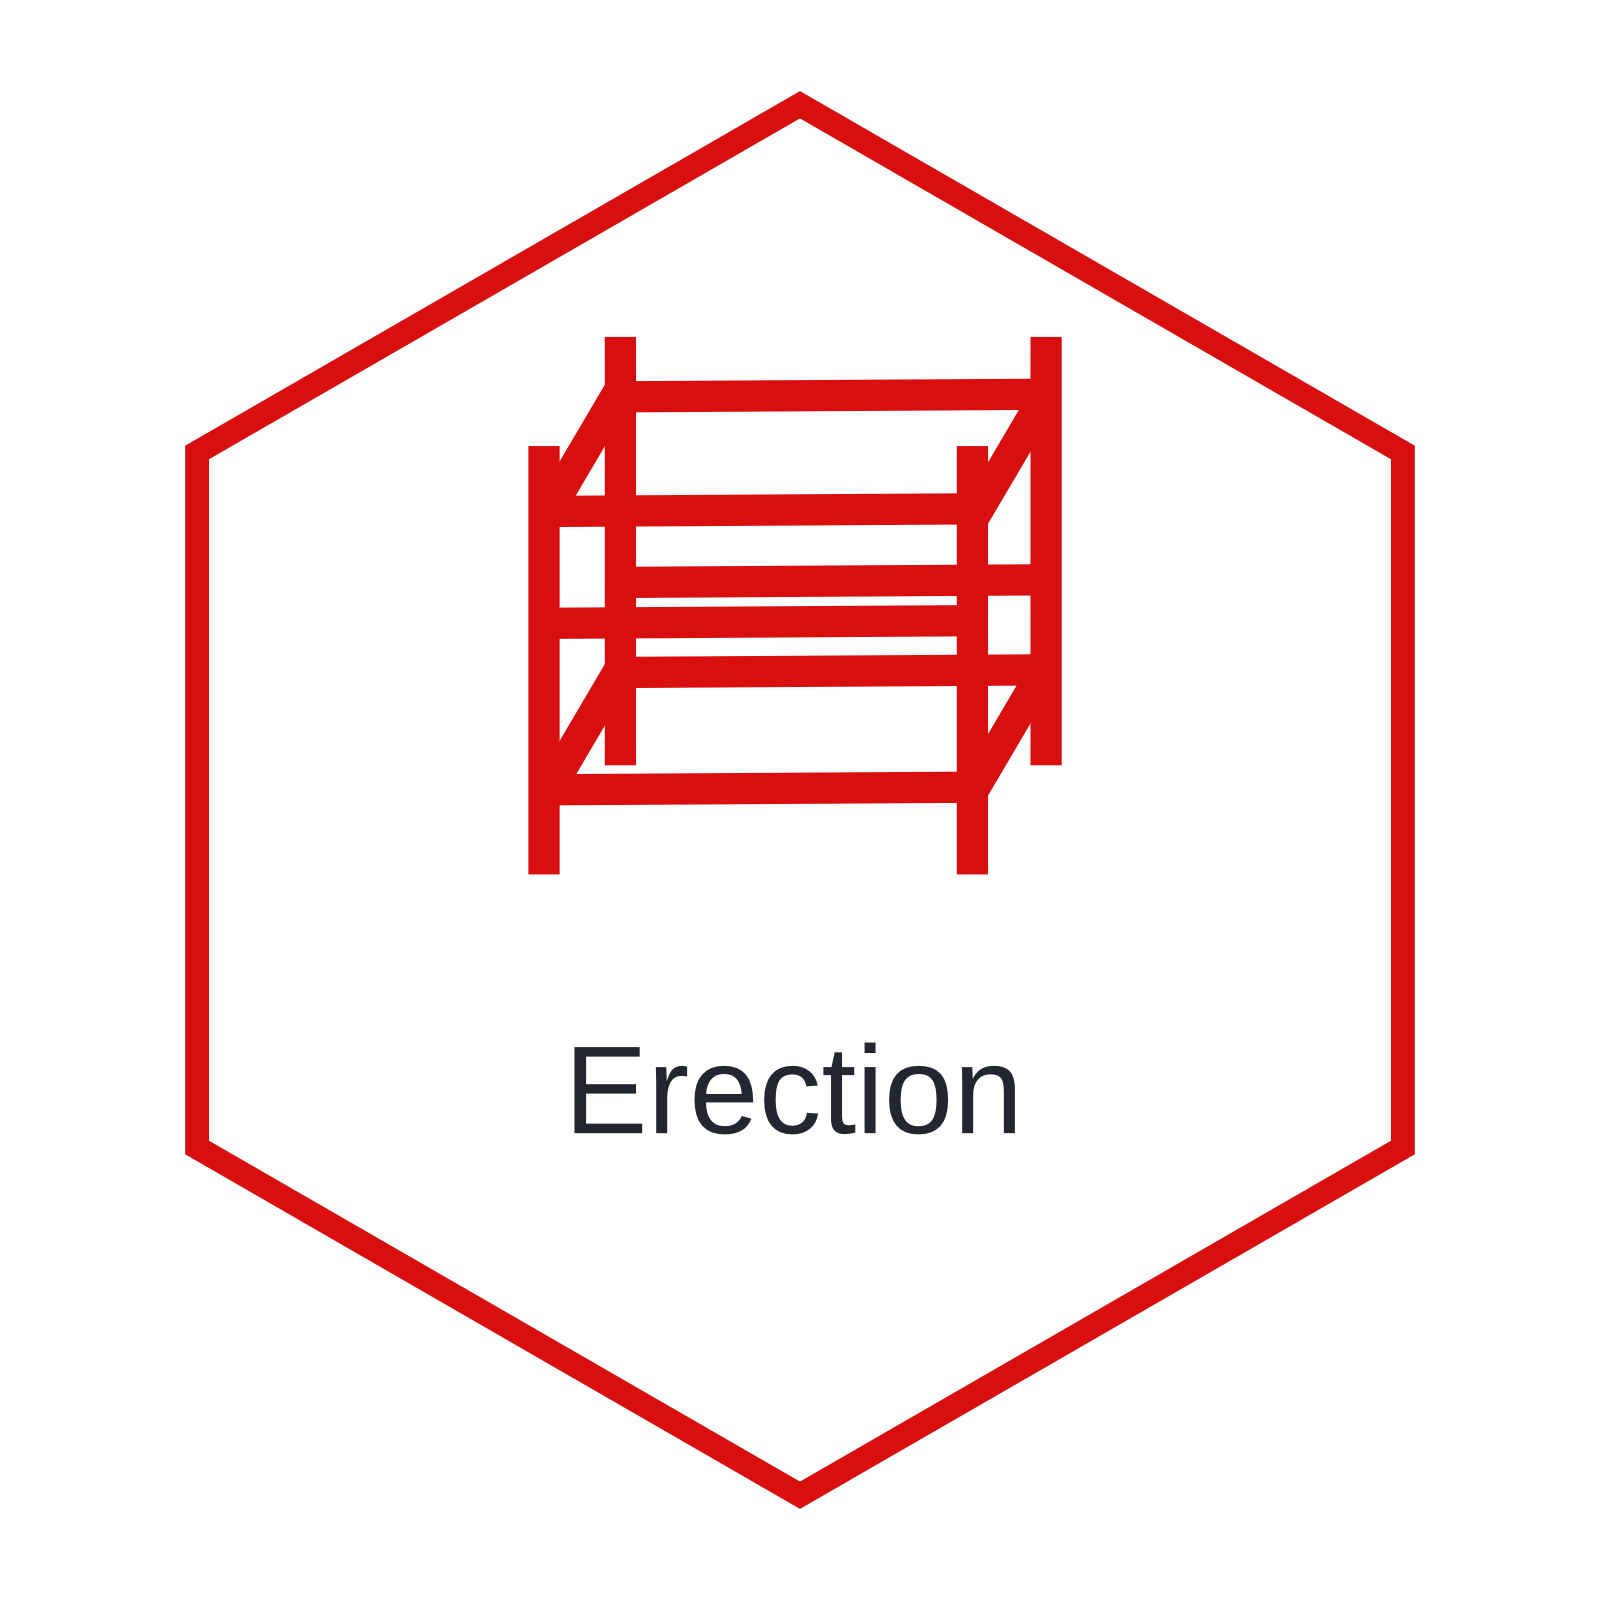 Peri Peri creative - LTS Structural-icon-Erection